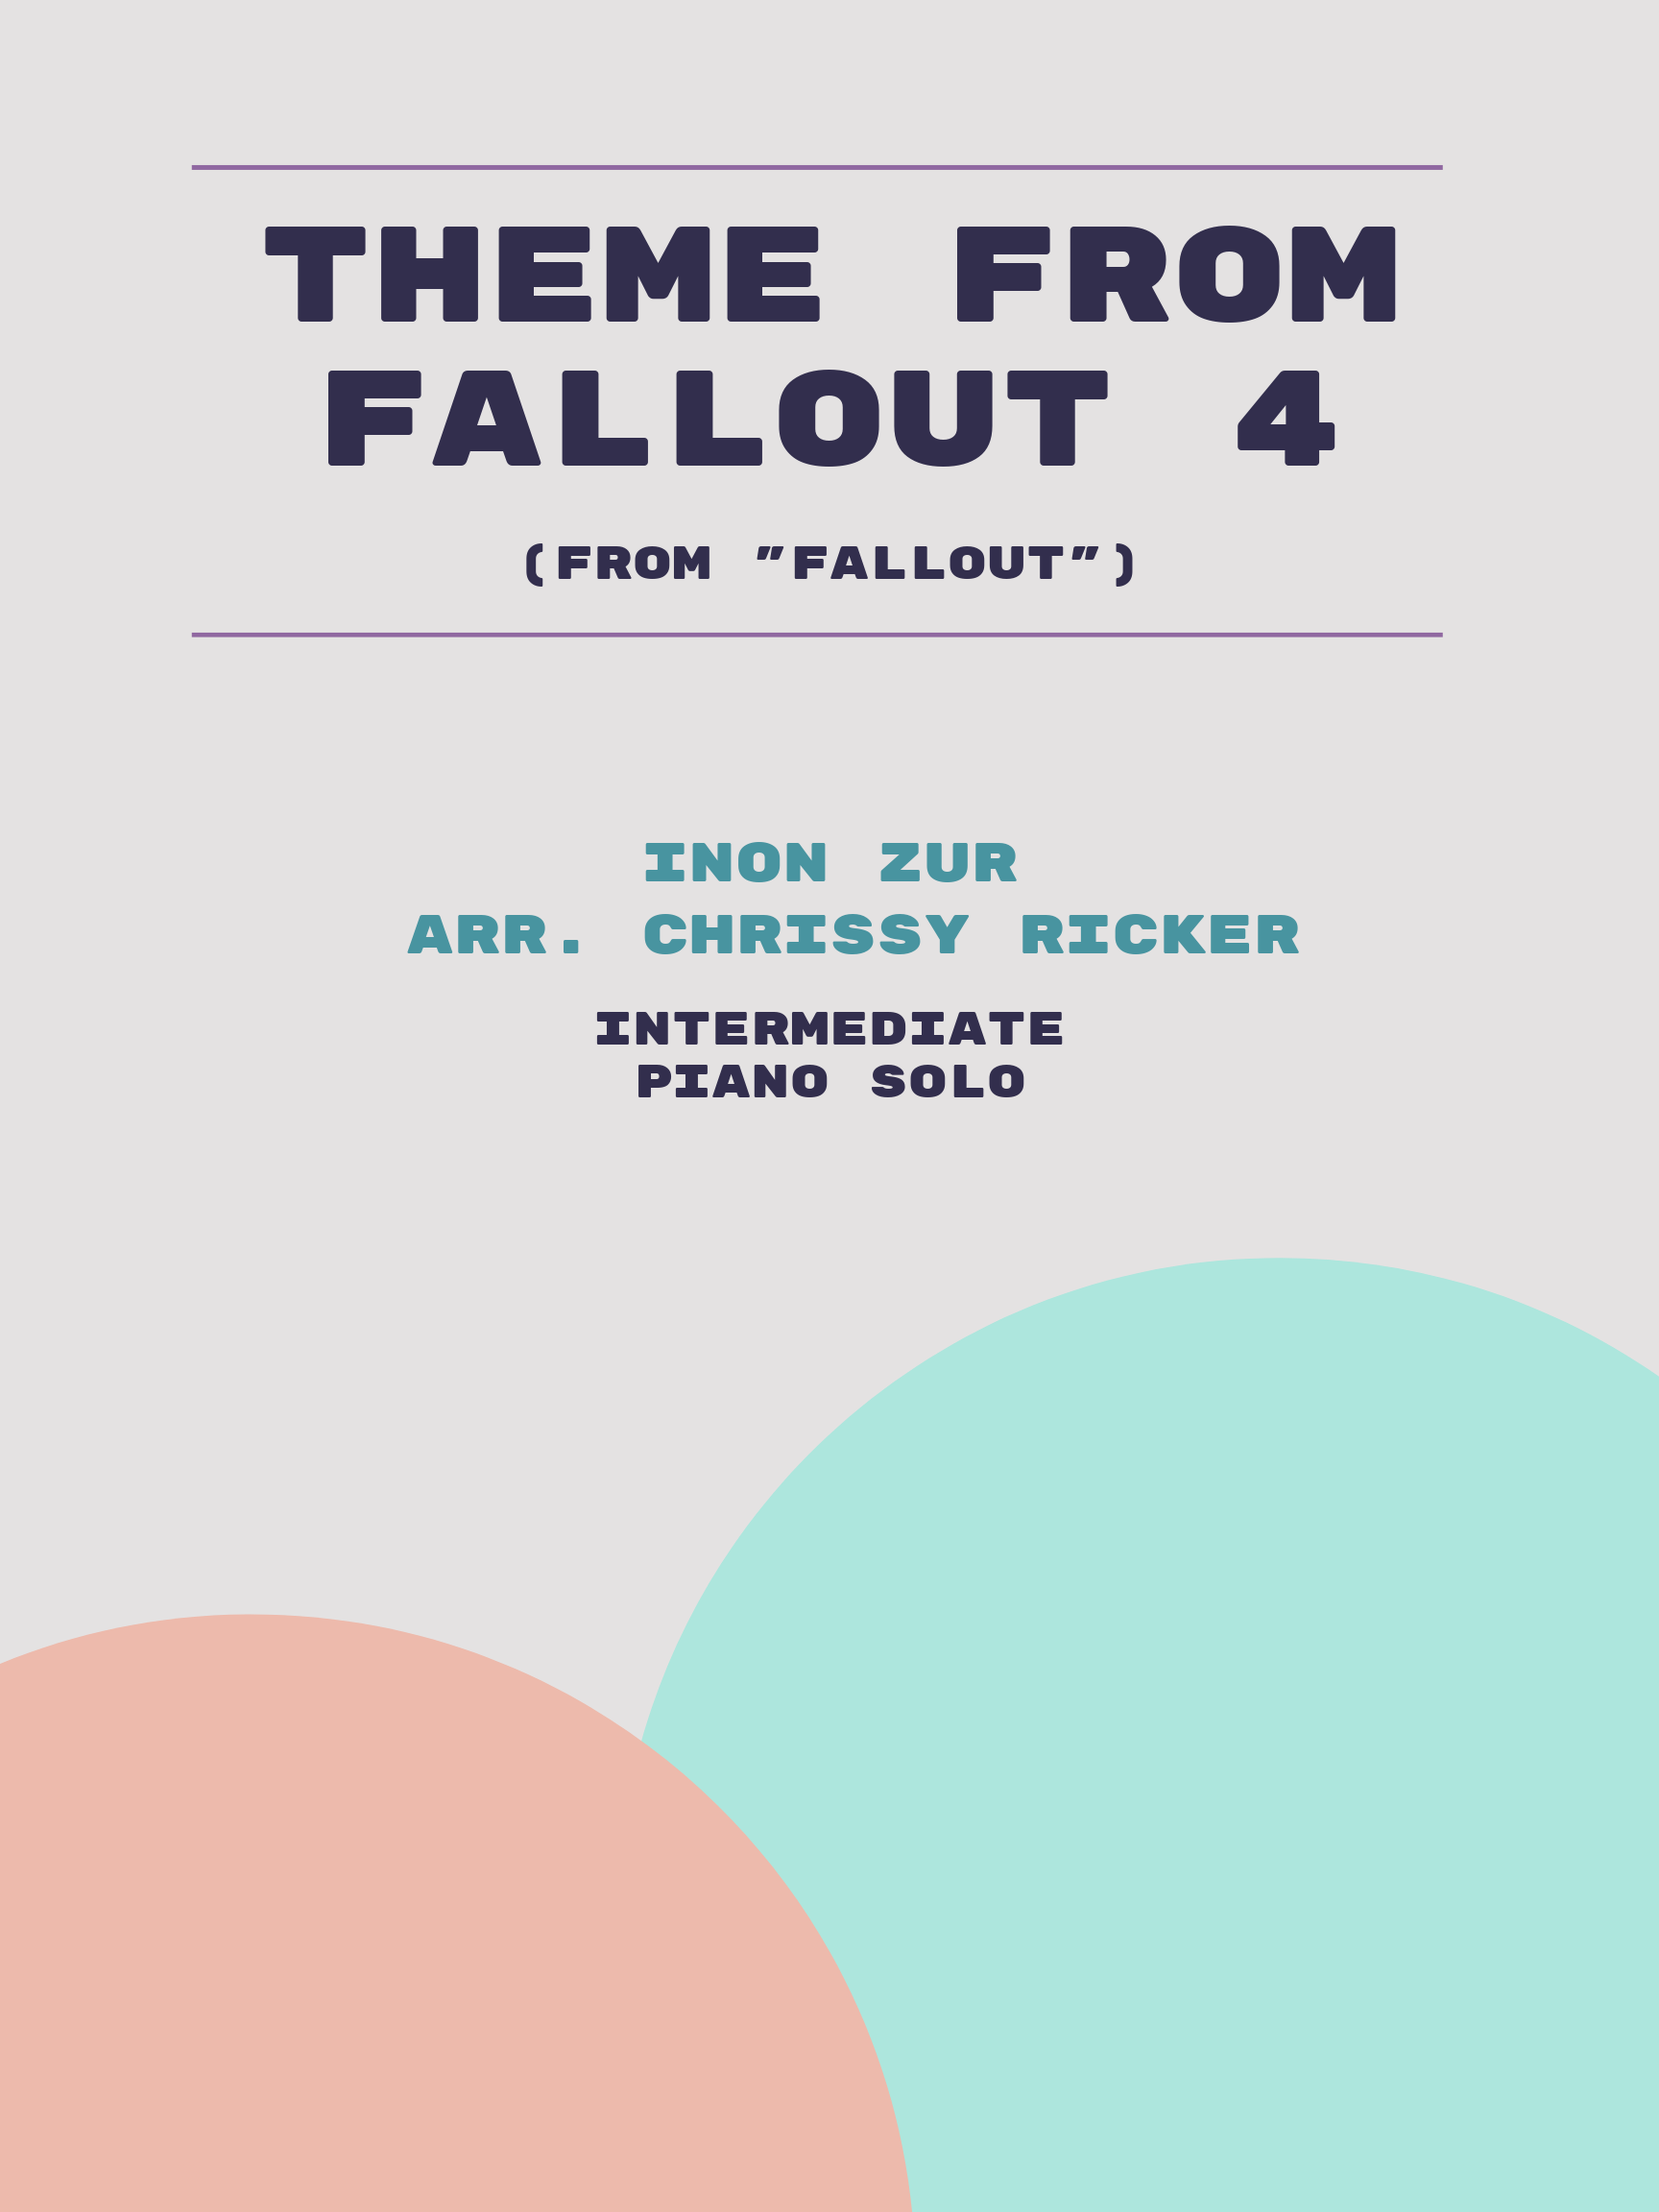 Theme from Fallout 4 by Inon Zur